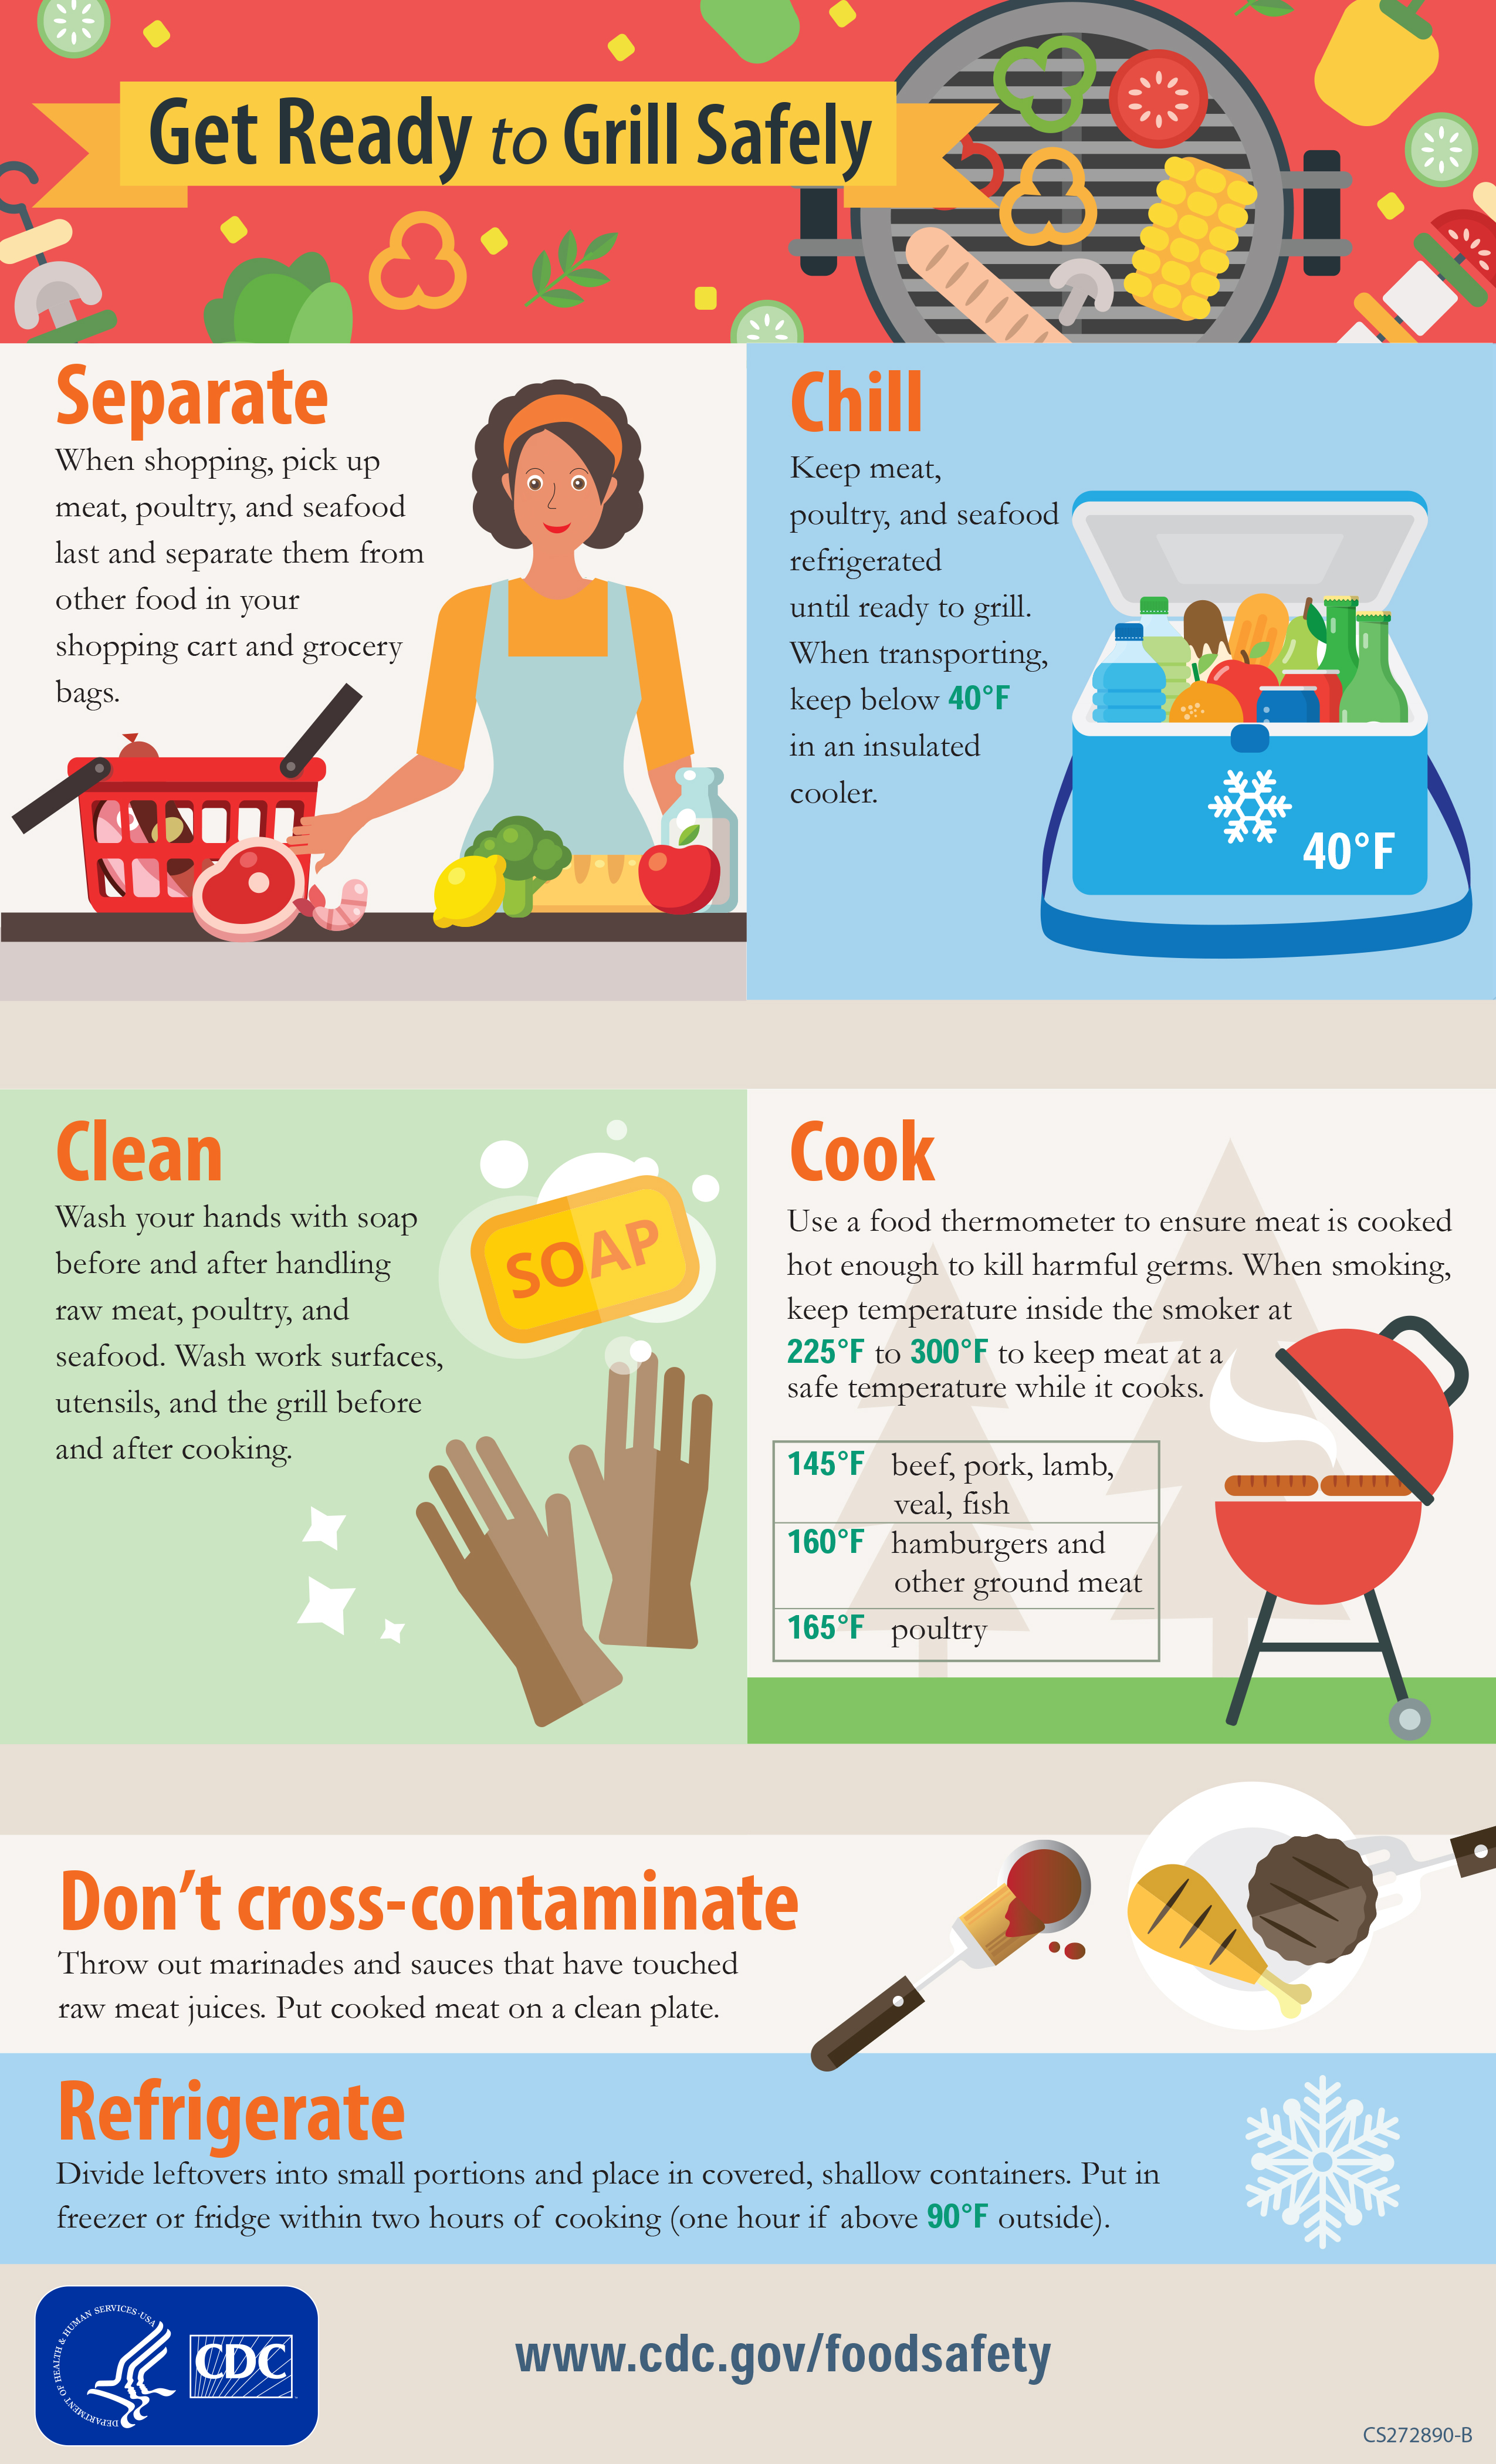 Food Grilling Safety Tips from www.cdc.gov/foodsafety